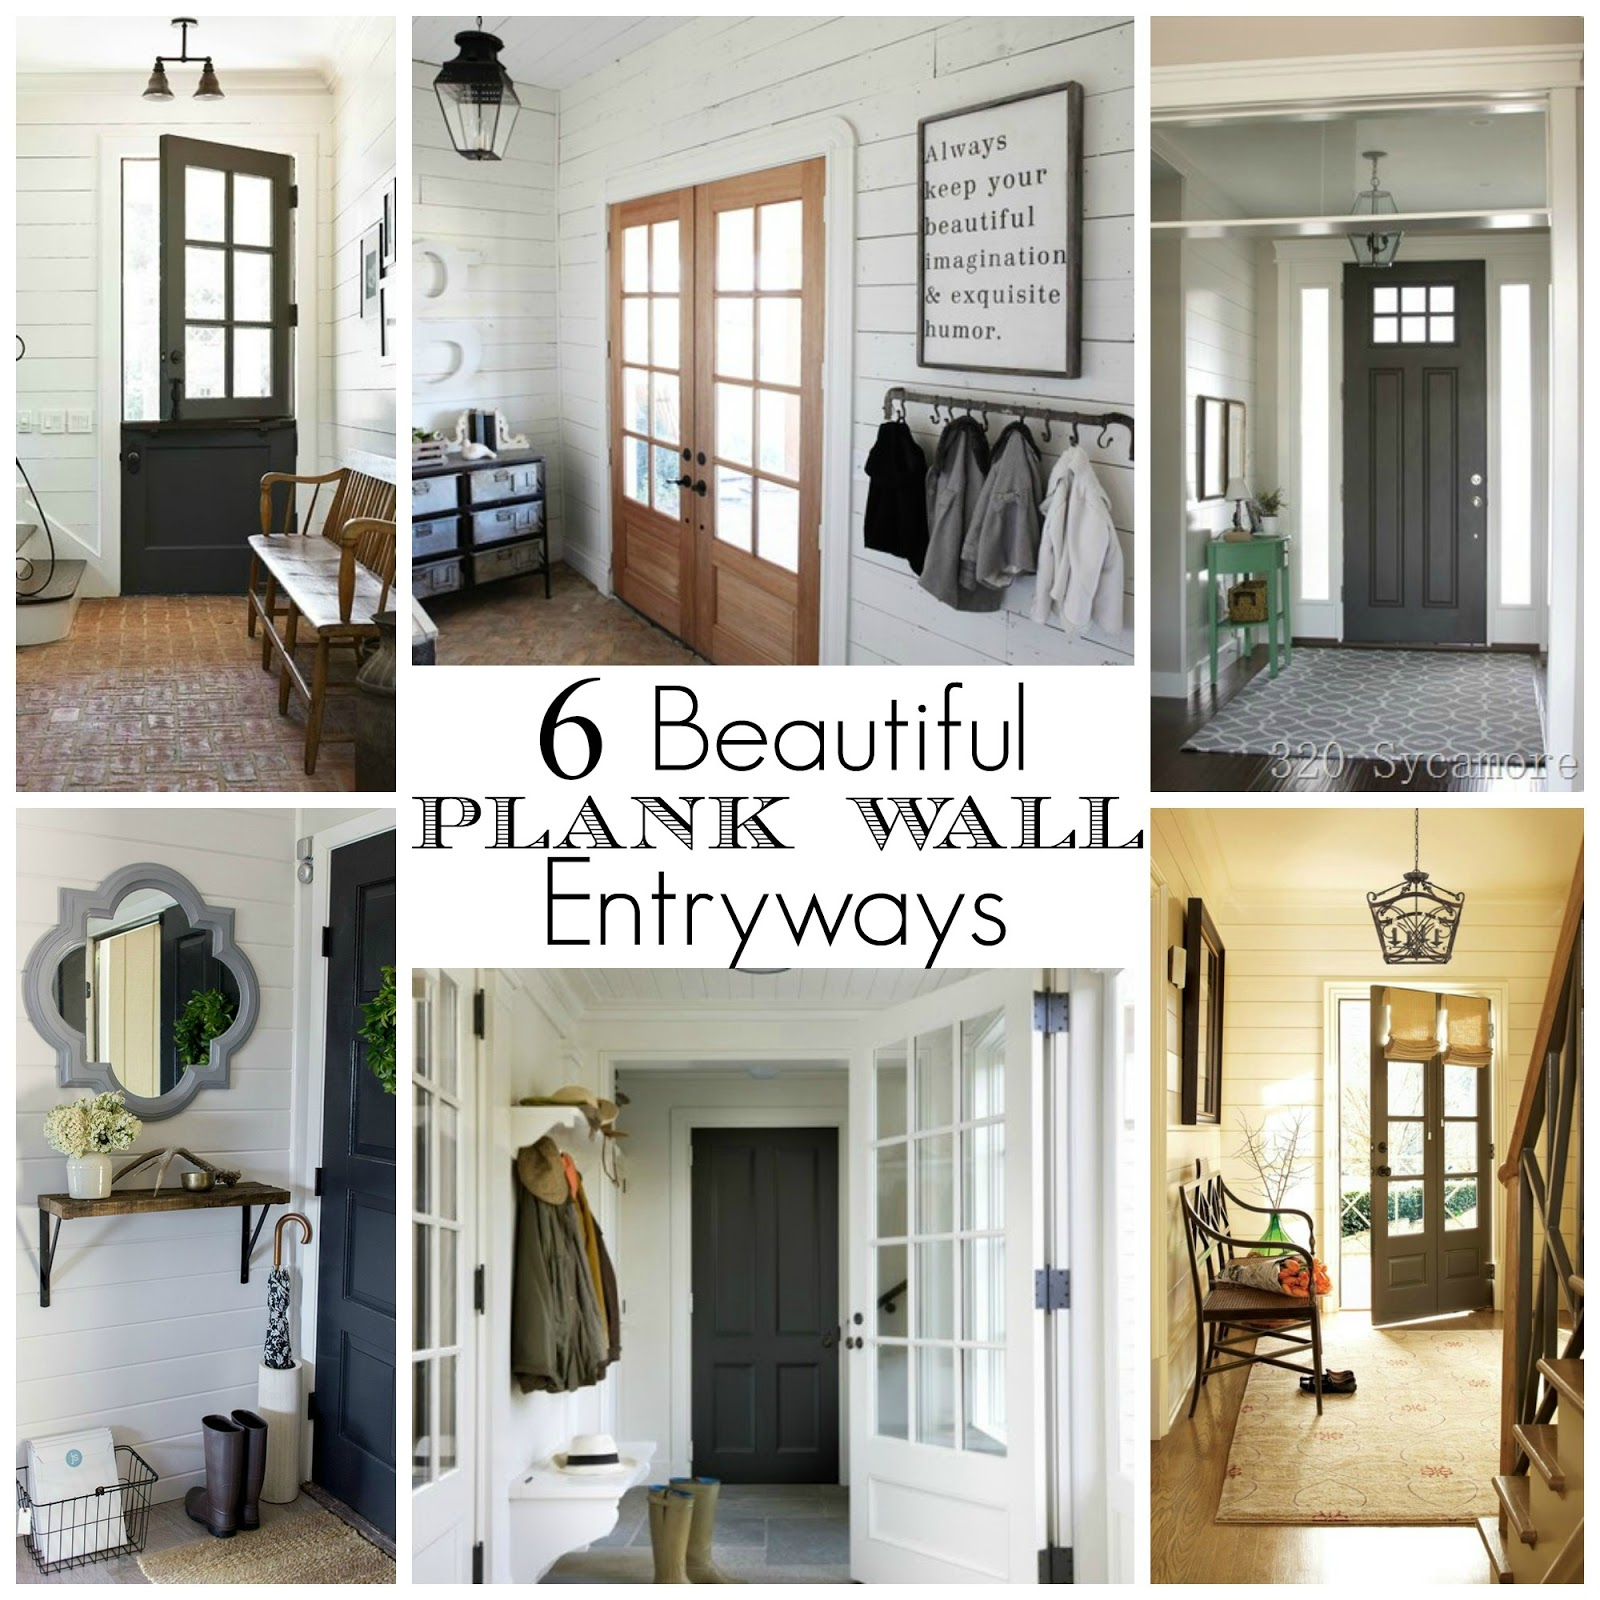 6 beautiful plank wall entryways little house of four creating a beautiful home one thrifty